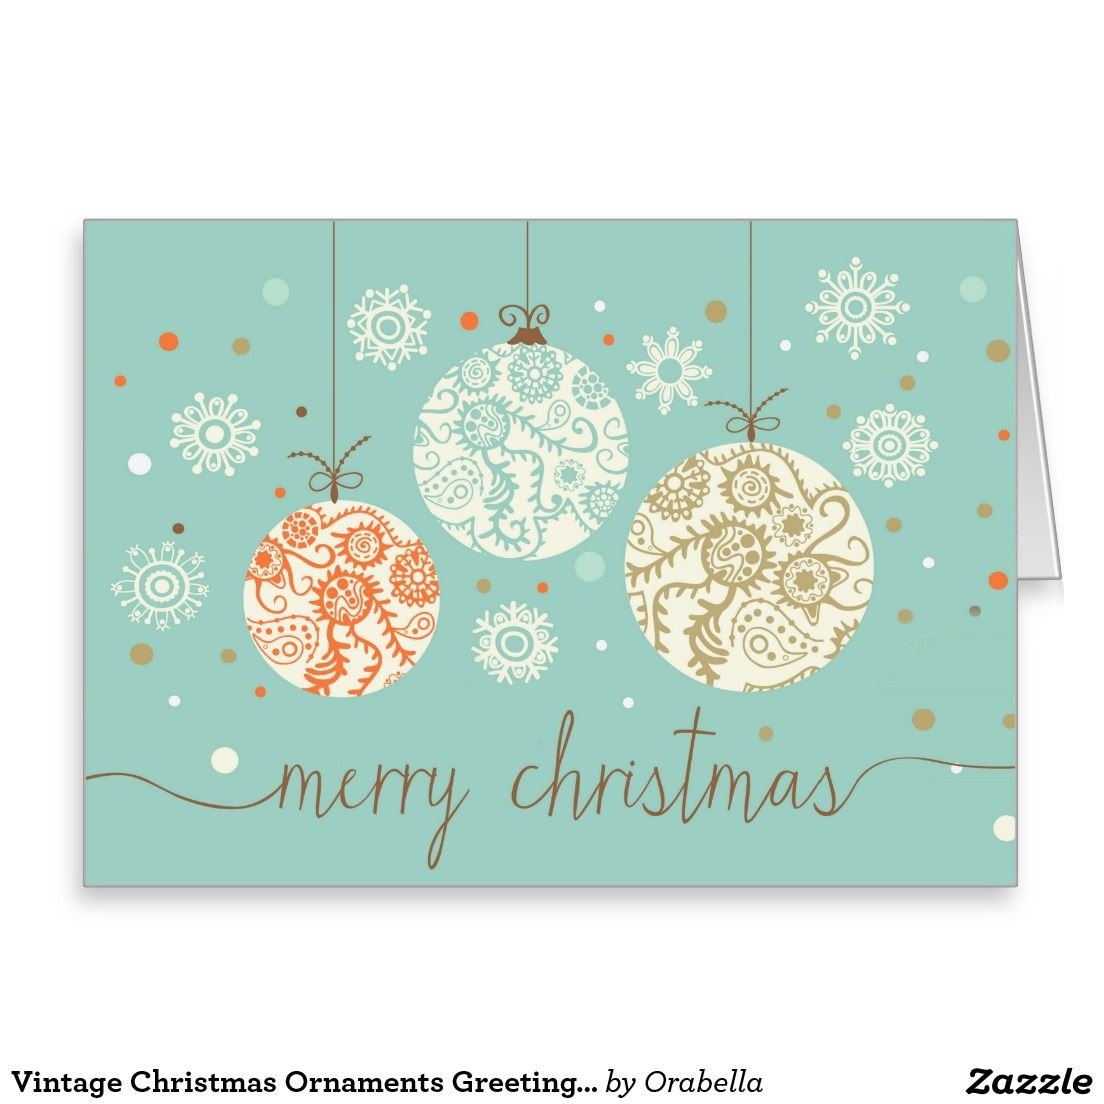 Vintage Christmas Ornaments Greeting Card #zazzle | Christmas Cards ...